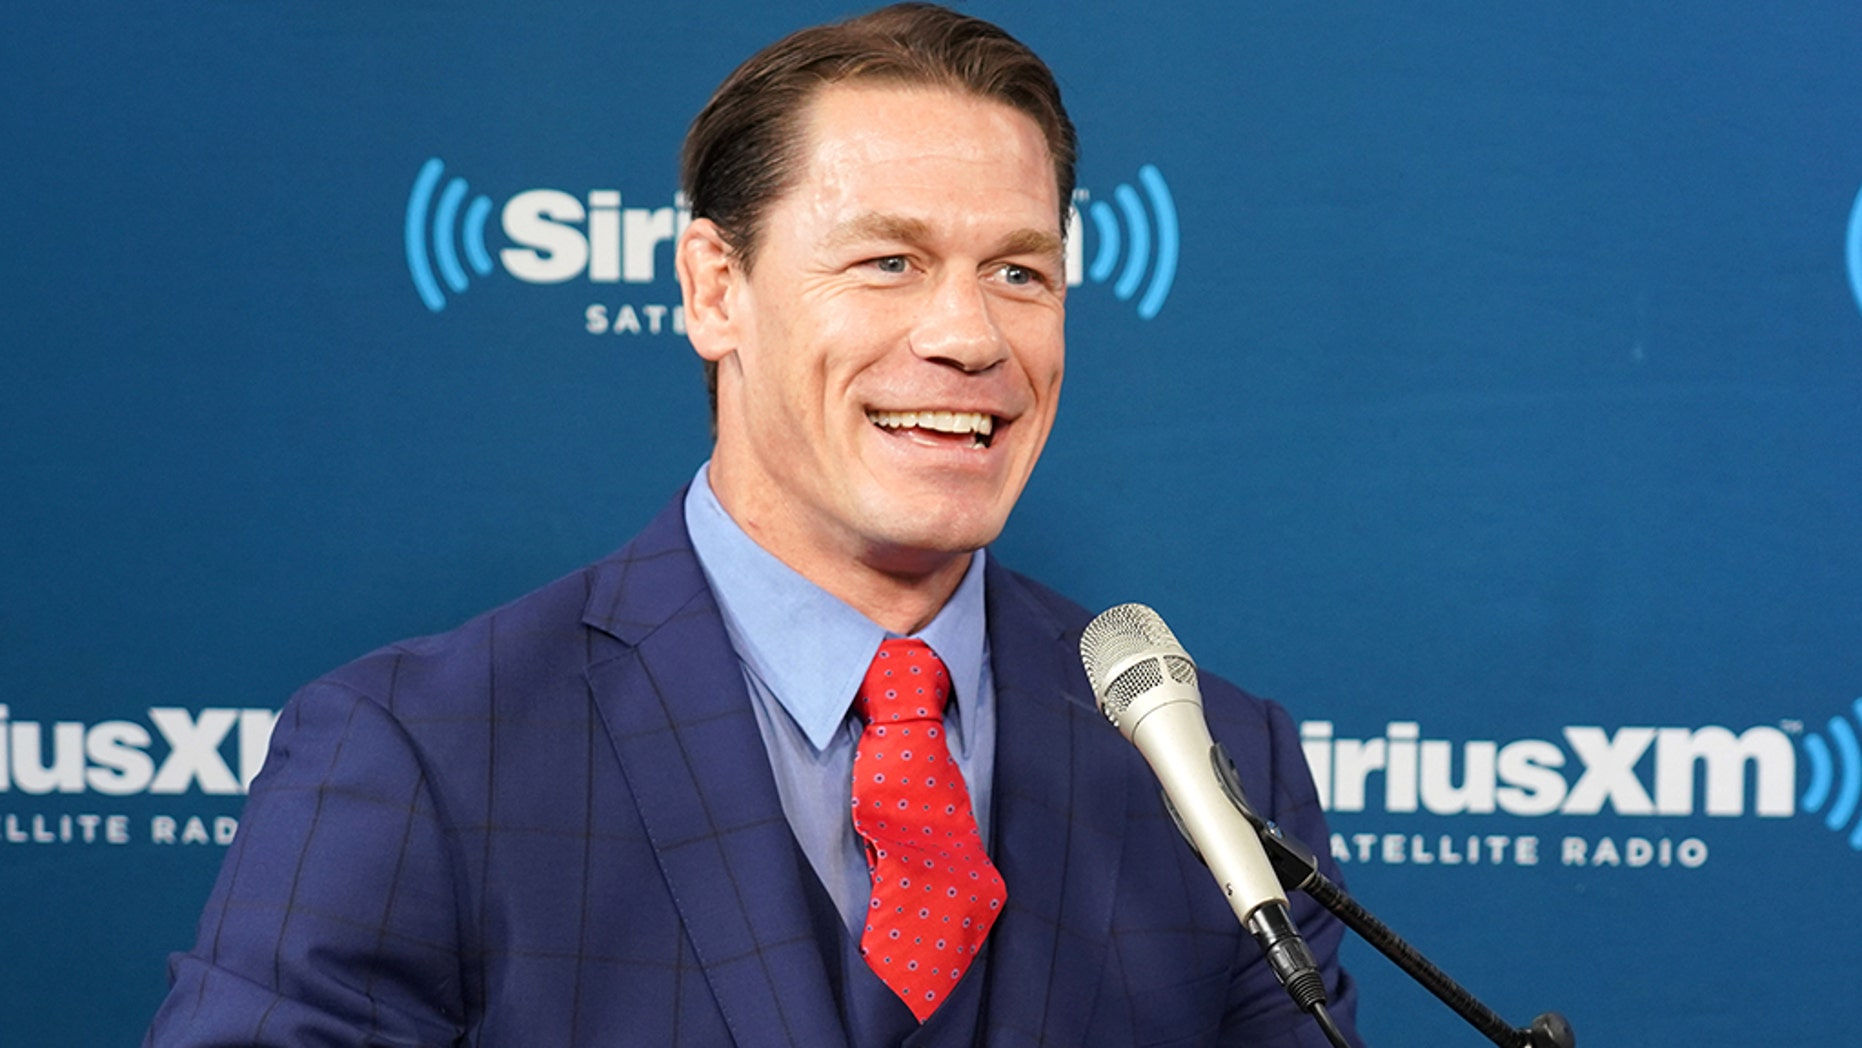 Sports Illustrated announced Thursday that it would bestow WWE star John Cena next month with the Muhammad Ali Legacy Award in recognition of his work in philanthropy.